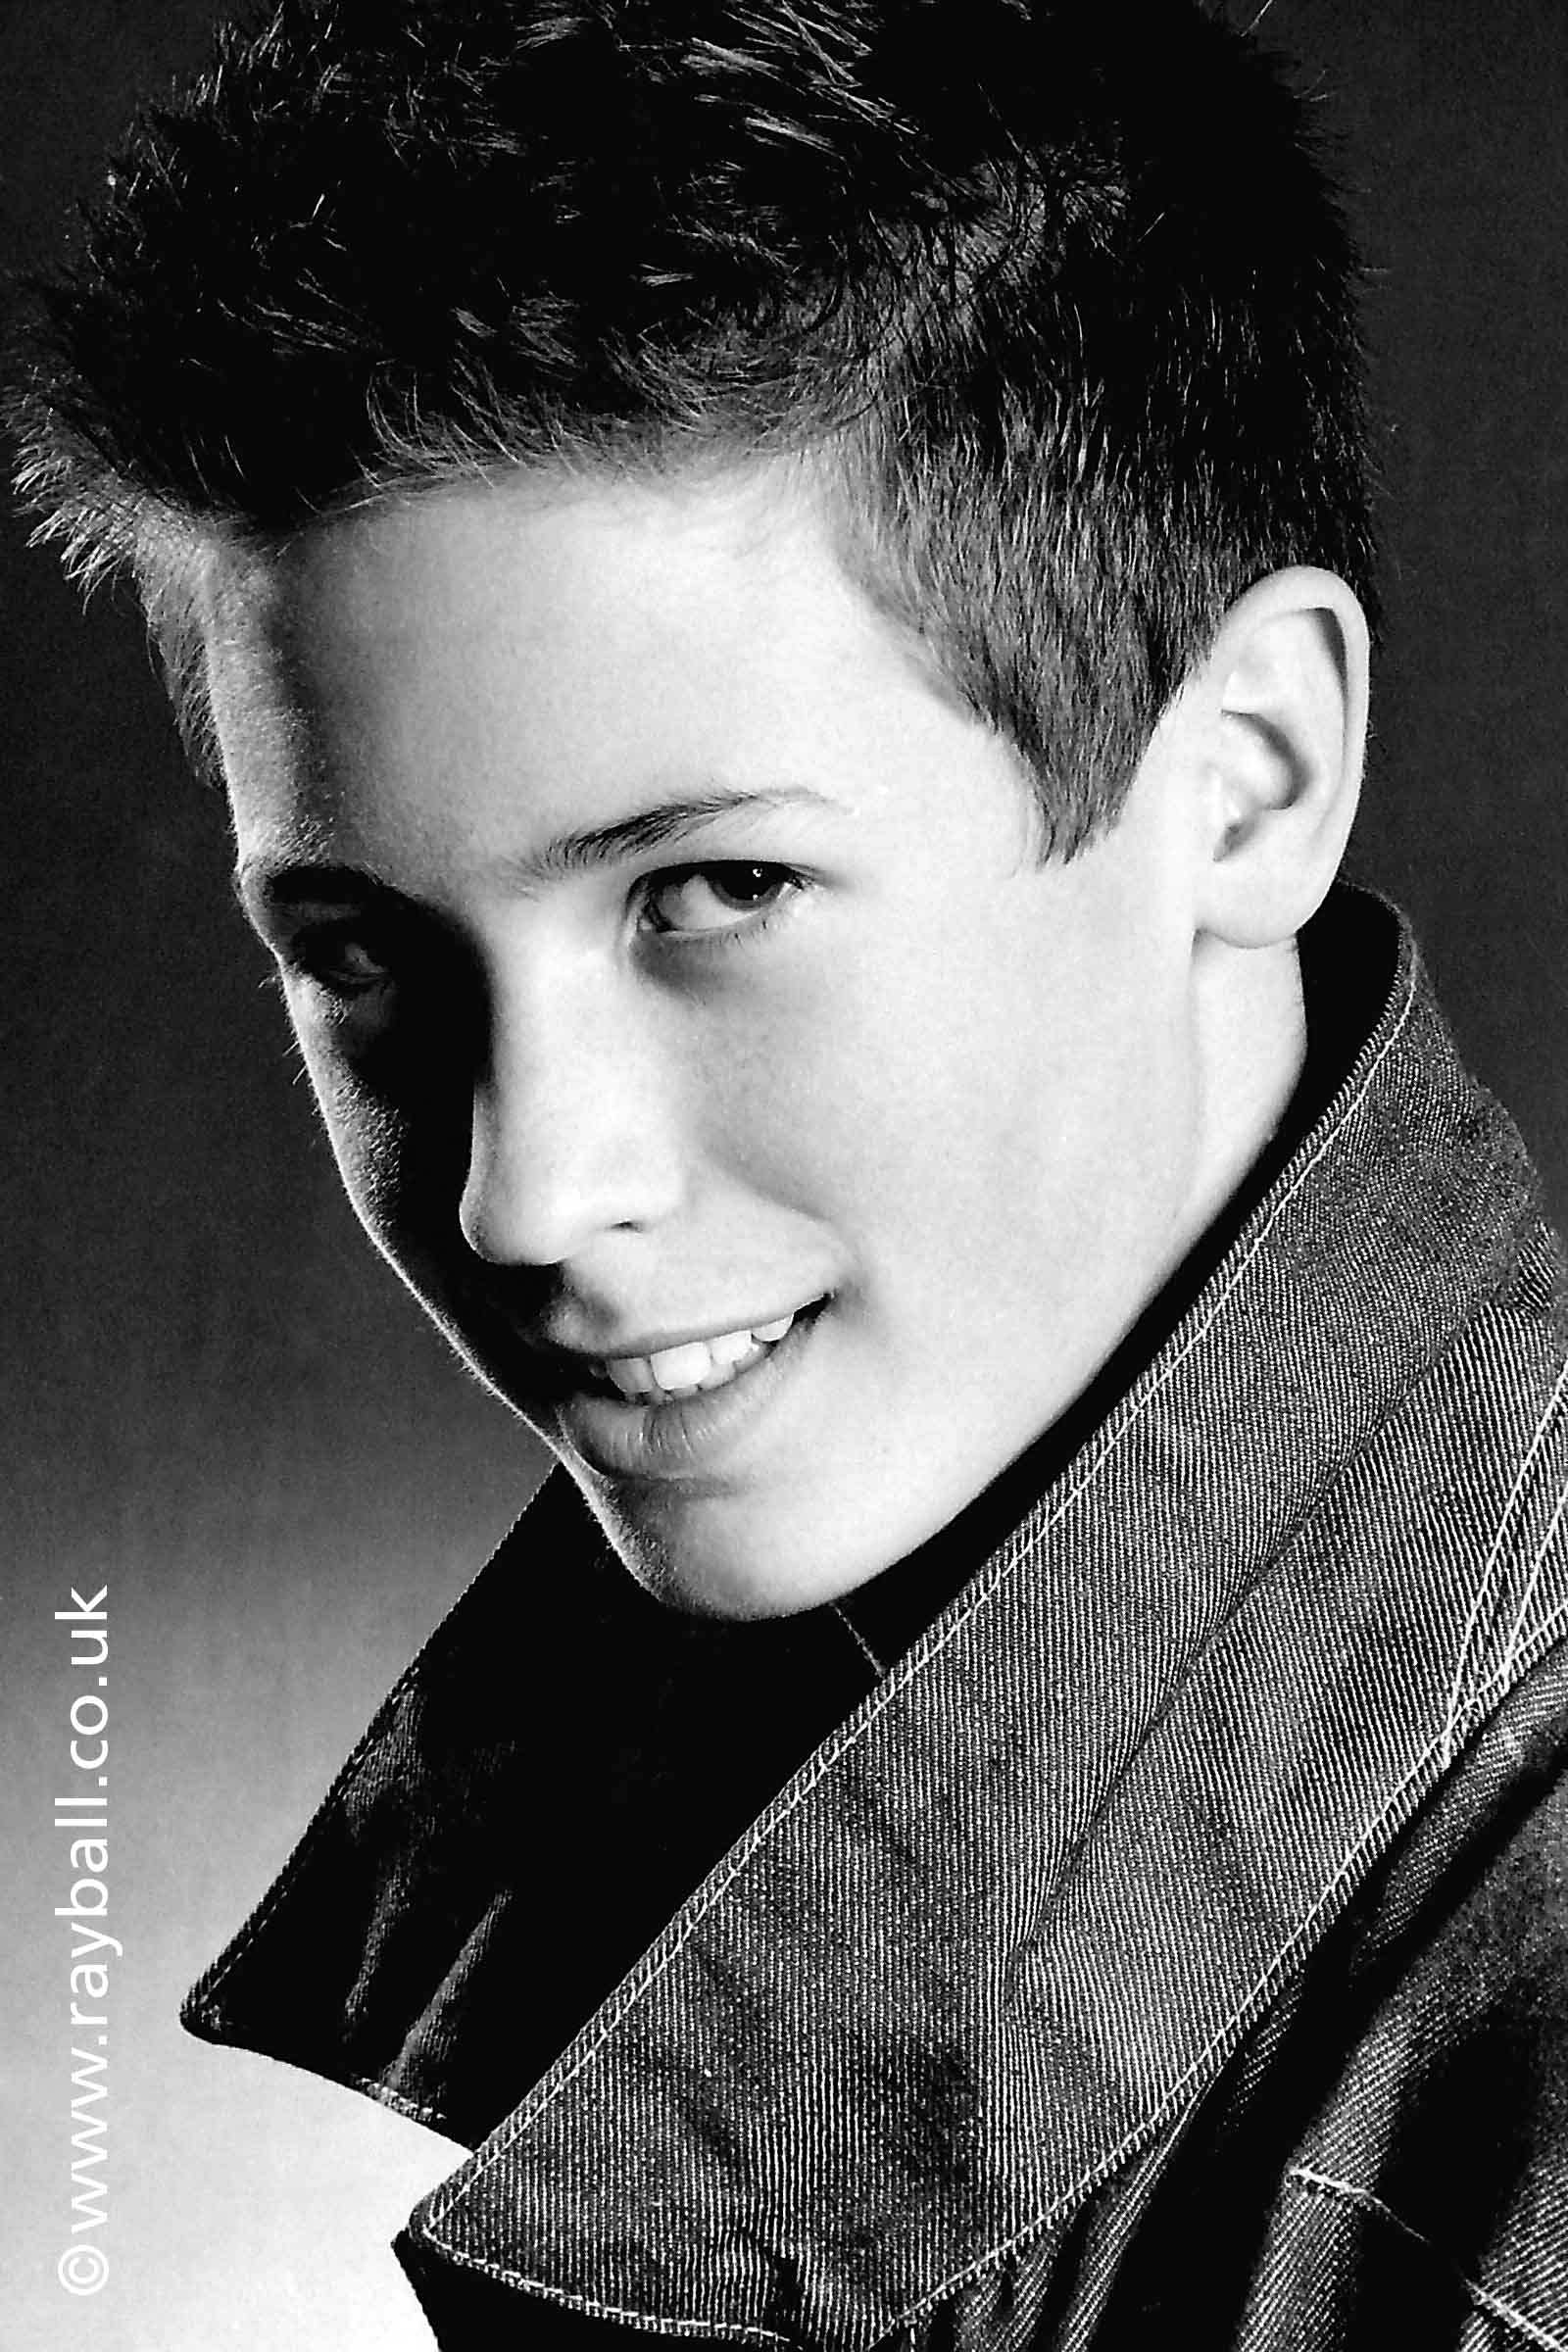 Beautiful picture of young guy from Stoneleigh at Epsom Photography Studio Surrey.